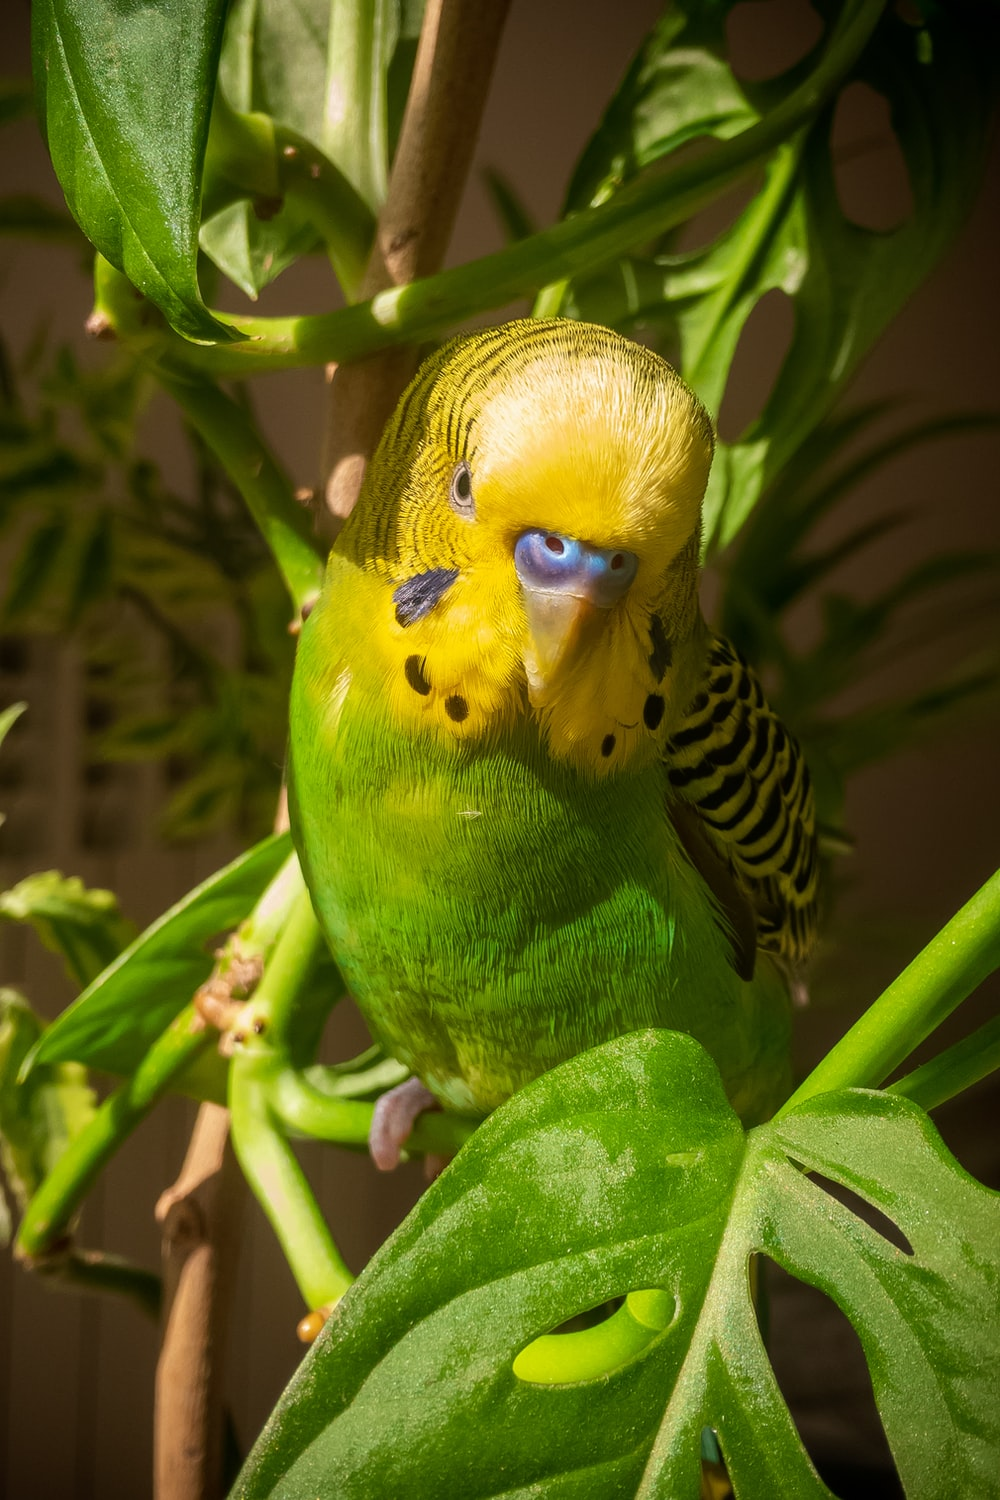 yellow and black bird on green plant